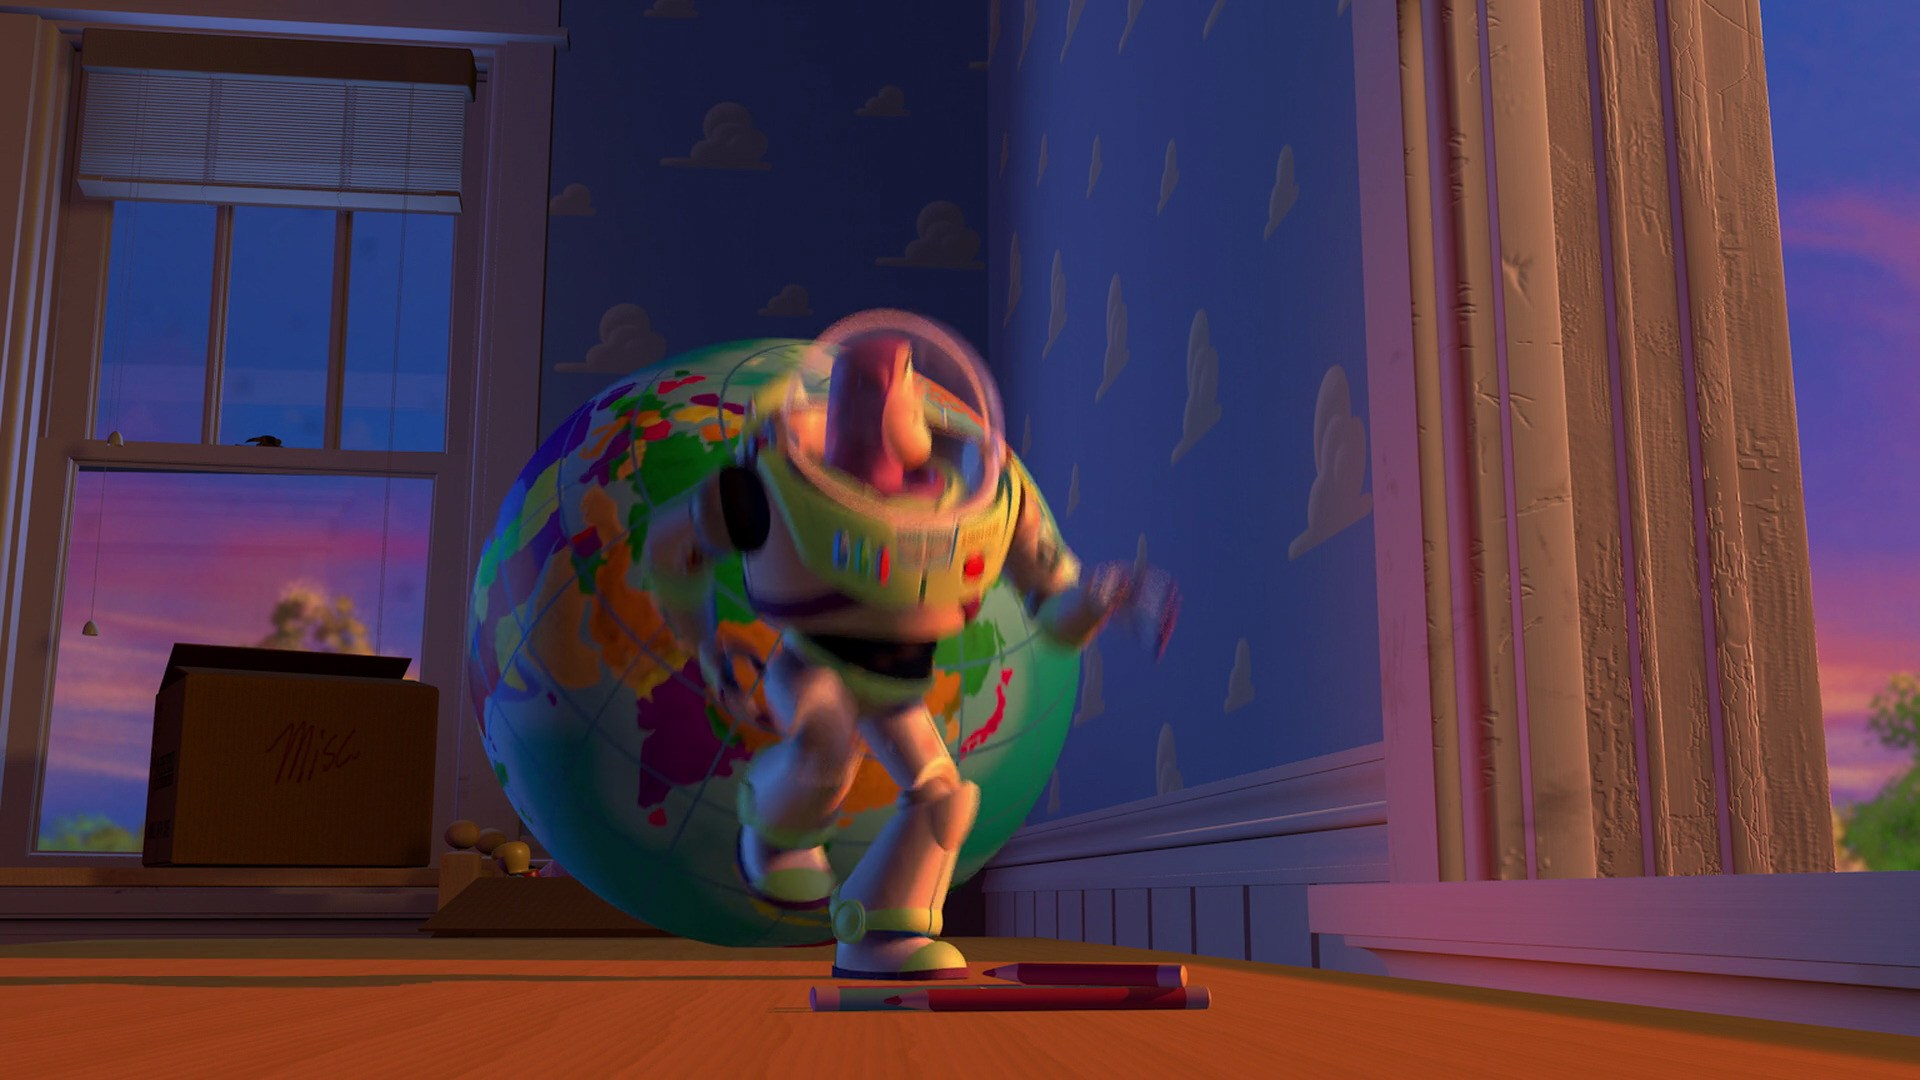 Indiana Jones References in Pixar Productions